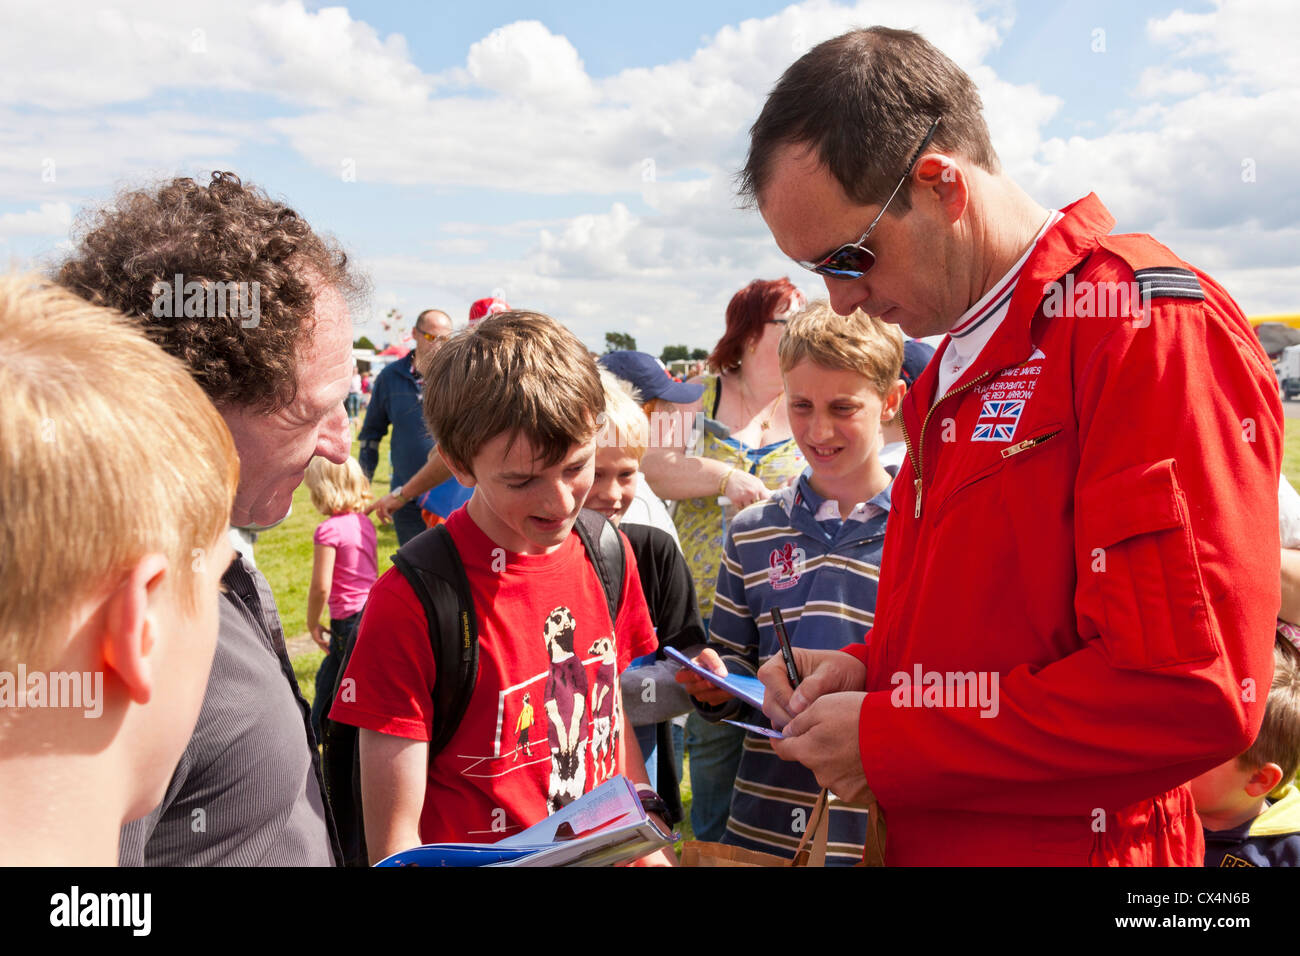 Dave Davies of the RAF Red Arrows team signing autographs at Best of British Show, Cotswold (Kemble EGBP) Airport. - Stock Image